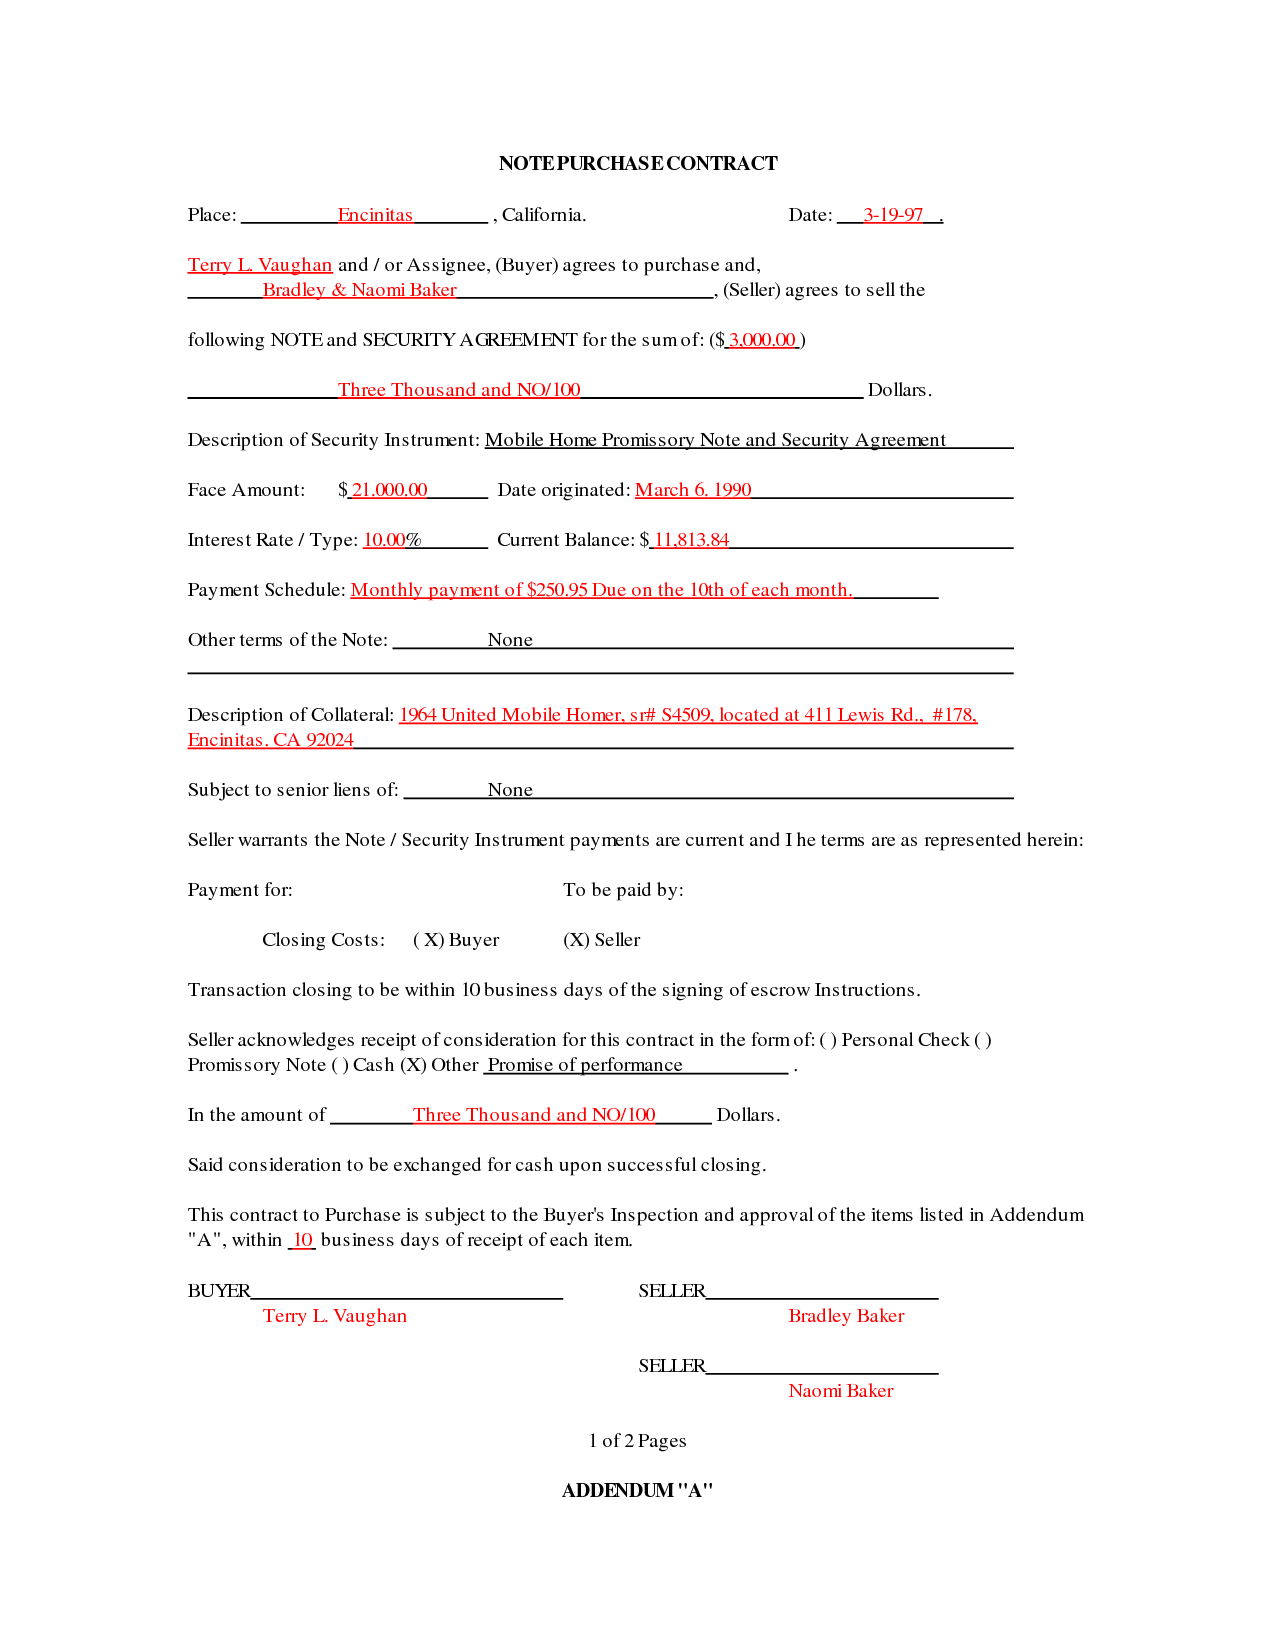 Mobile Home Purchase Agreement Template  Fascinating Ideas Intended For Mobile Home Purchase Agreement Template